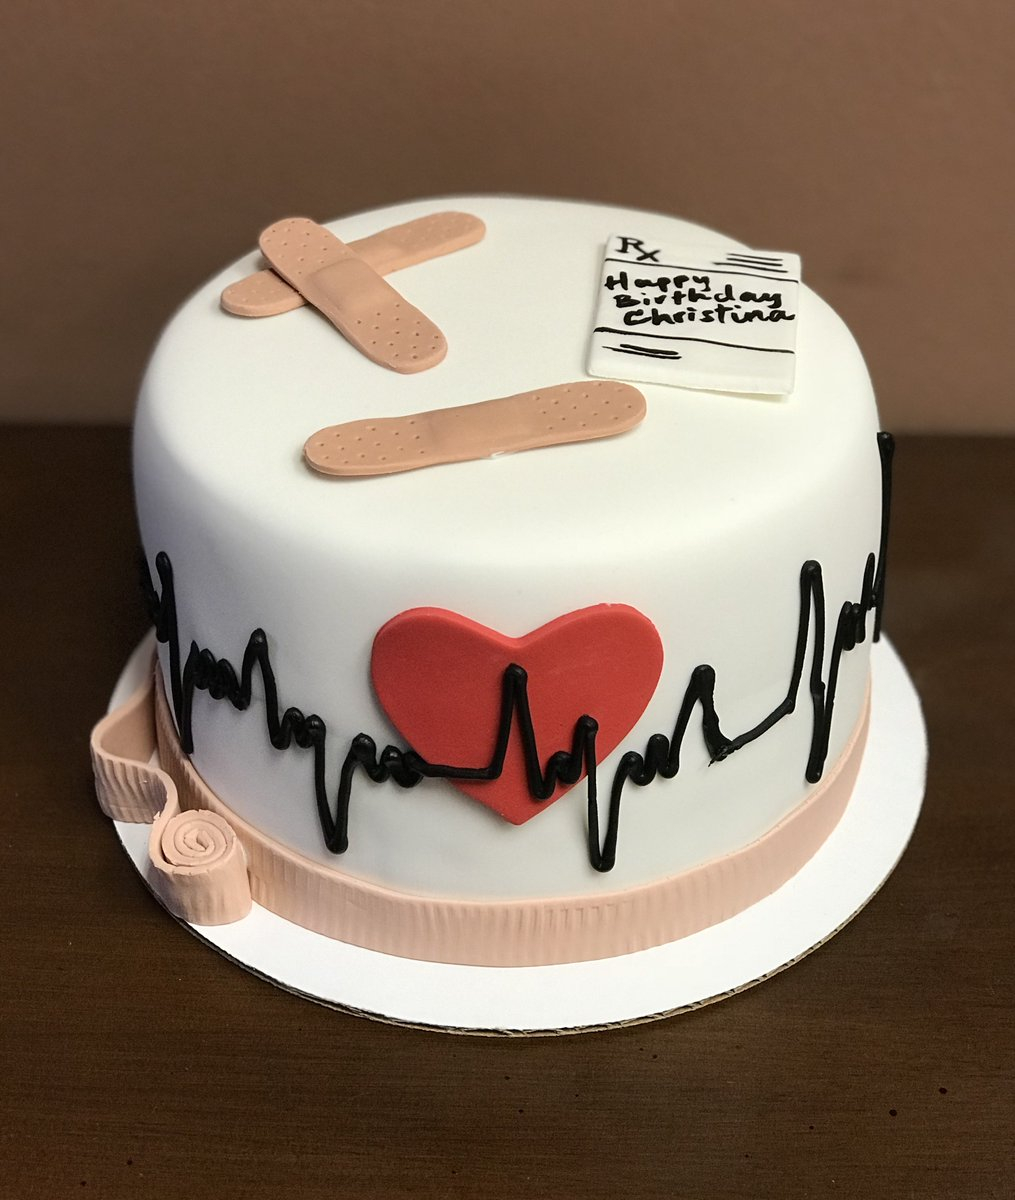 Doctor Who Birthday Cake Frostings On Twitter Check Out This Awesome Medical Cake Nurse